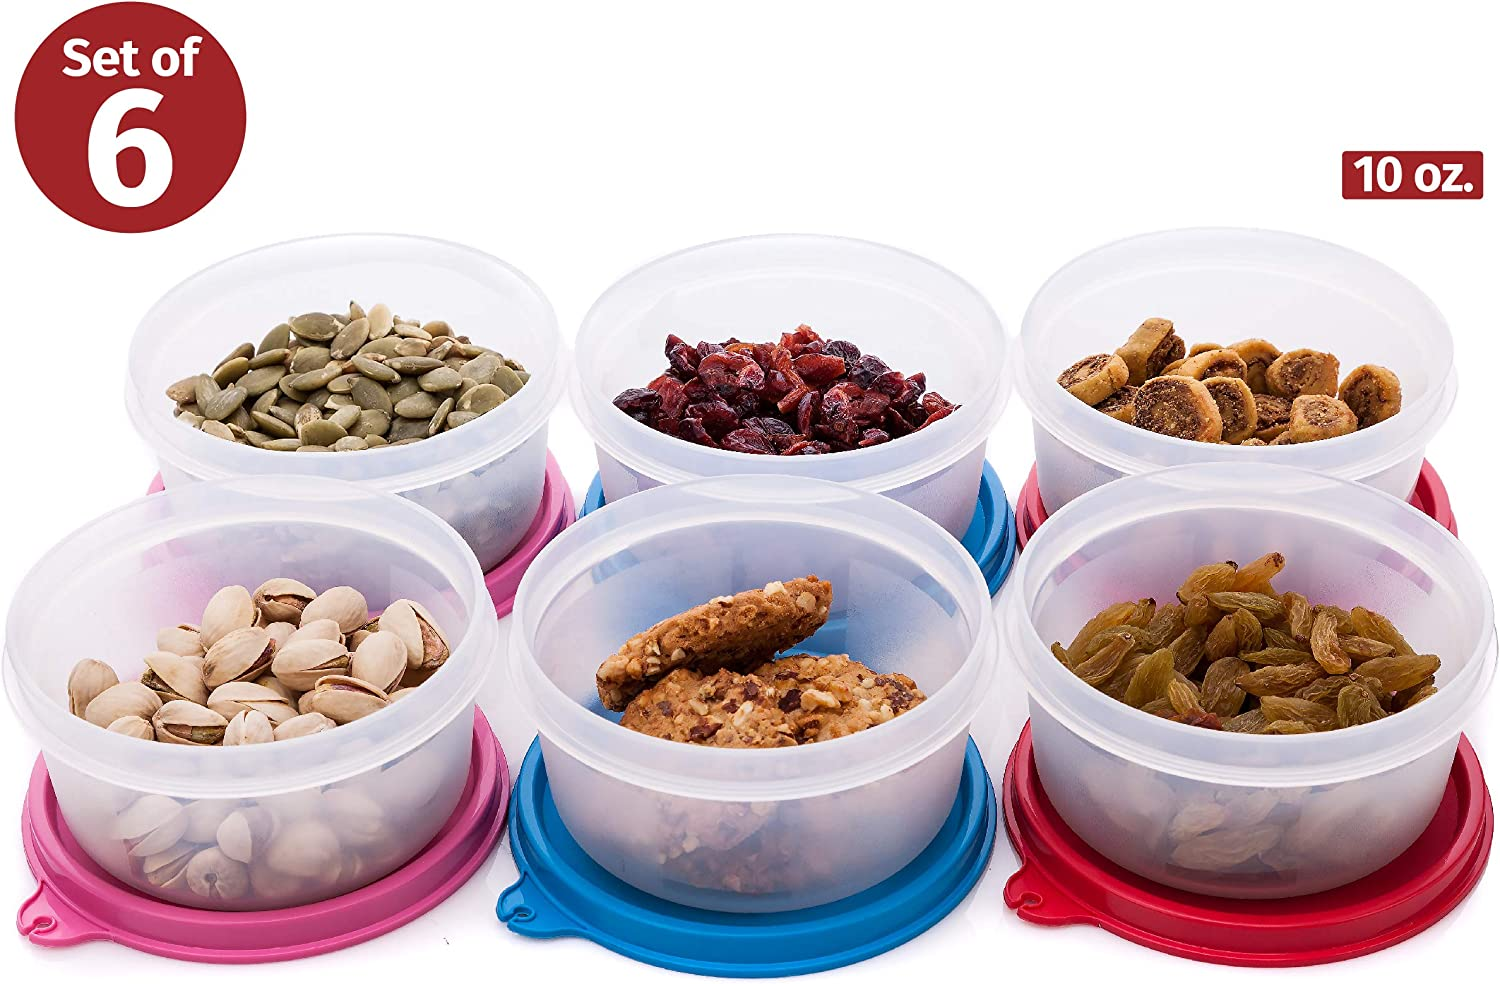 Reusable Plastic Food Storage Containers – Stackable Airtight Food Containers for Snacks, Picnics, Food Prep, Picnics and more – Set of 6 in Various Sizes – Dishwasher, Microwave and Freezer Safe 10oz